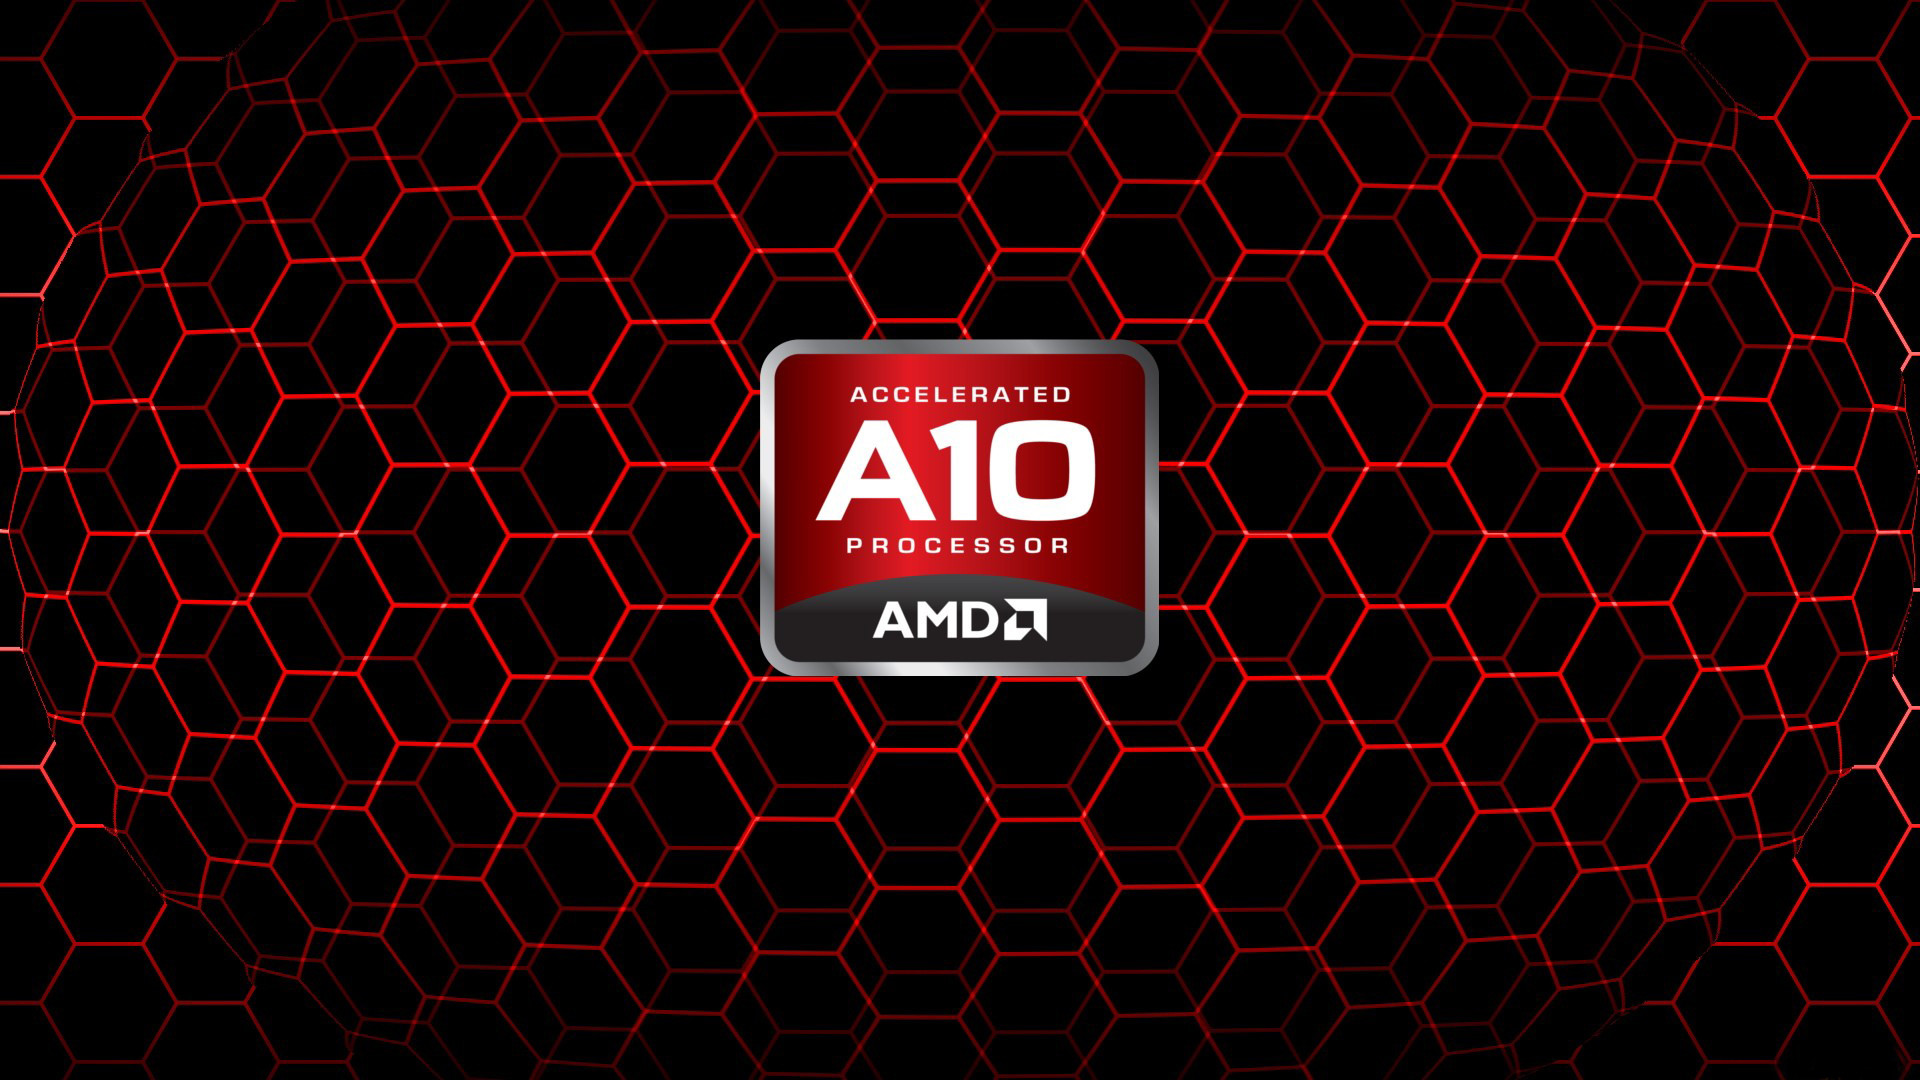 <b>Msi Amd Wallpaper</b> Pictures to Pin on Pinterest –